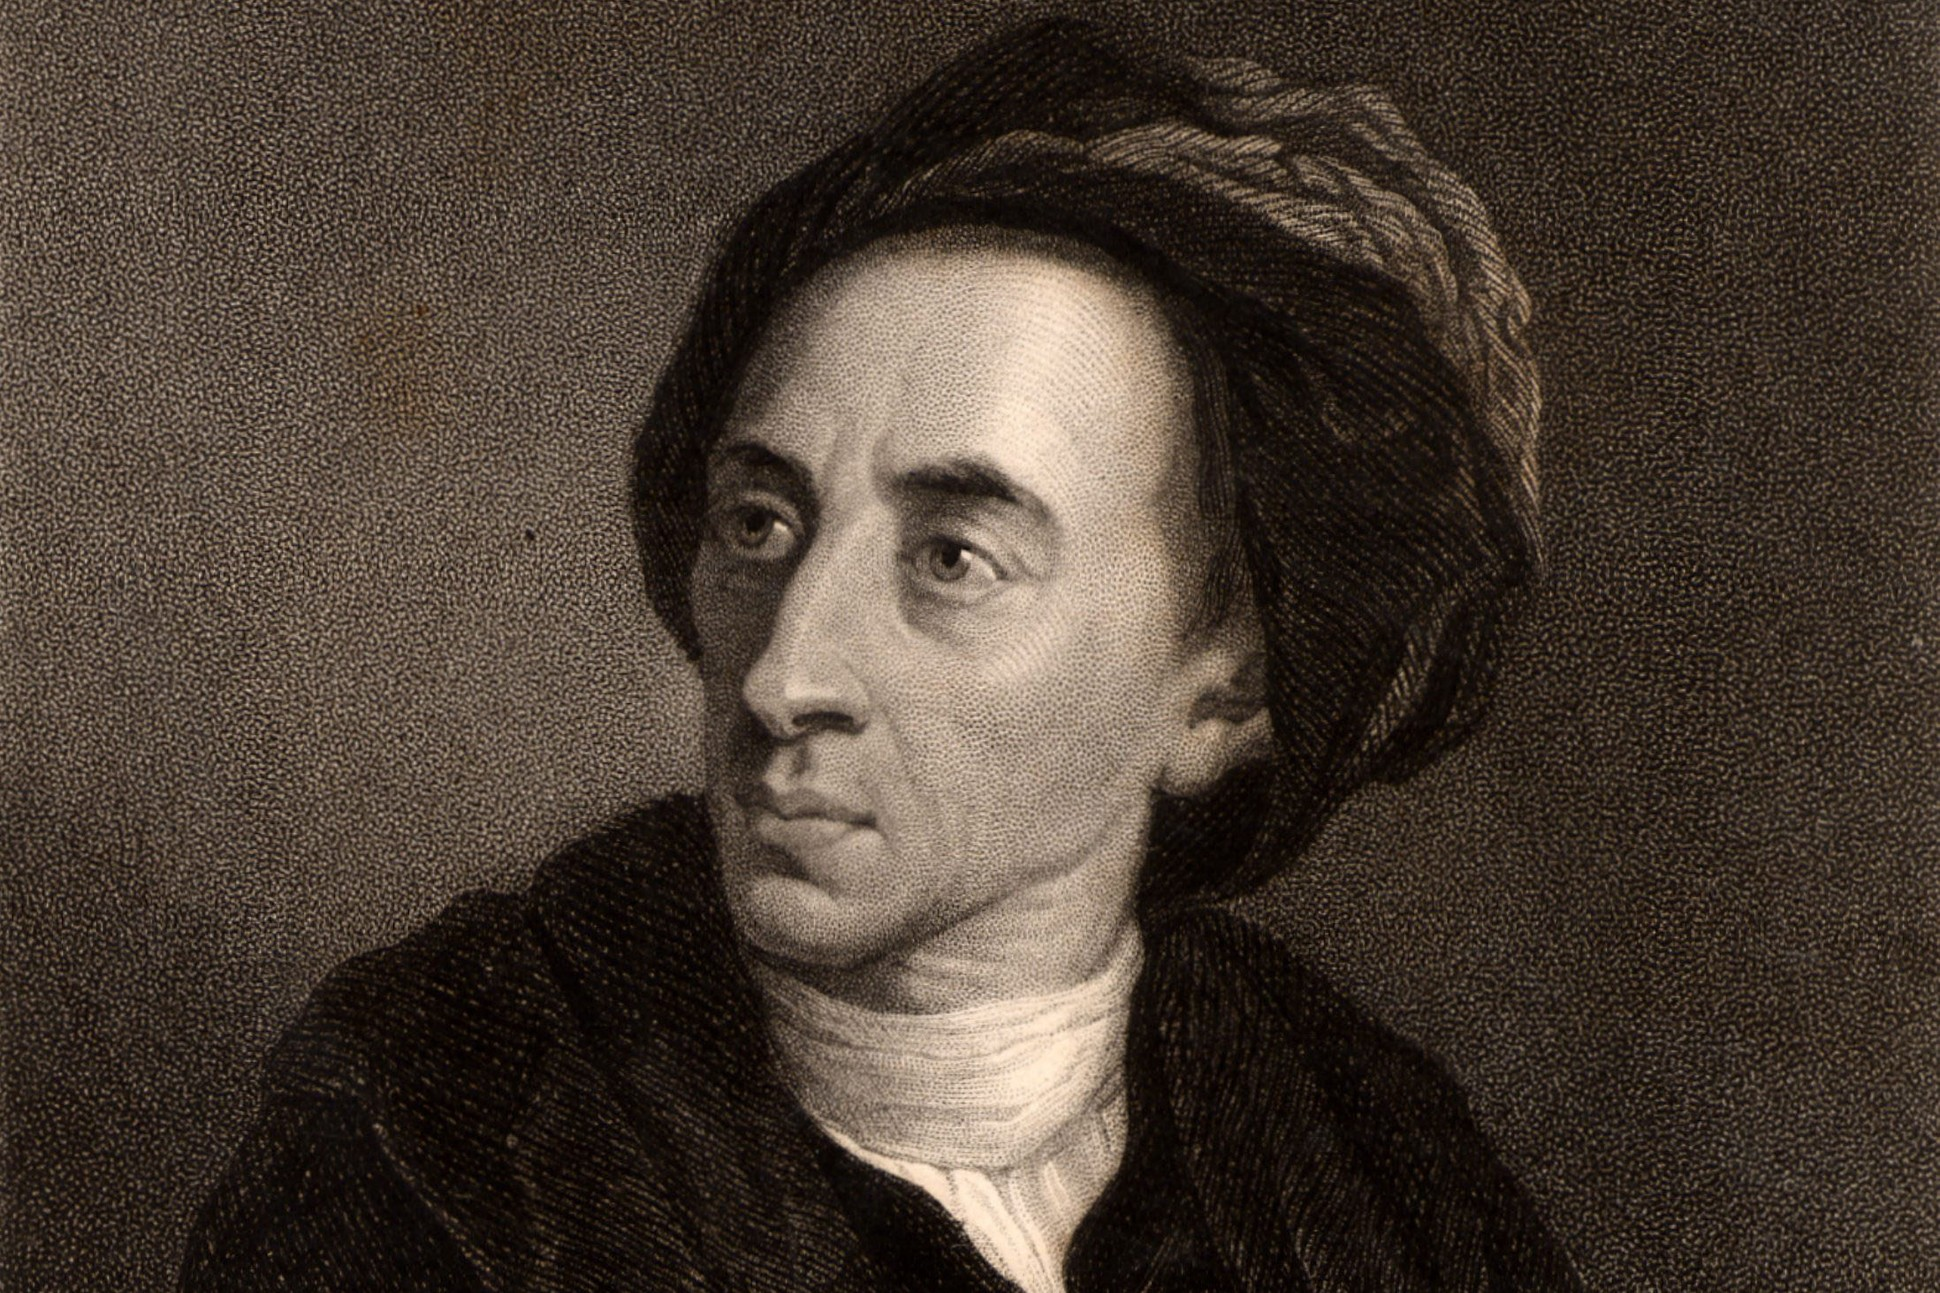 an essay on criticism An essay on criticism is one of the first major poems written by the english writer alexander pope (1688–1744) it is written in a type of rhyming verse called heroic couplets.